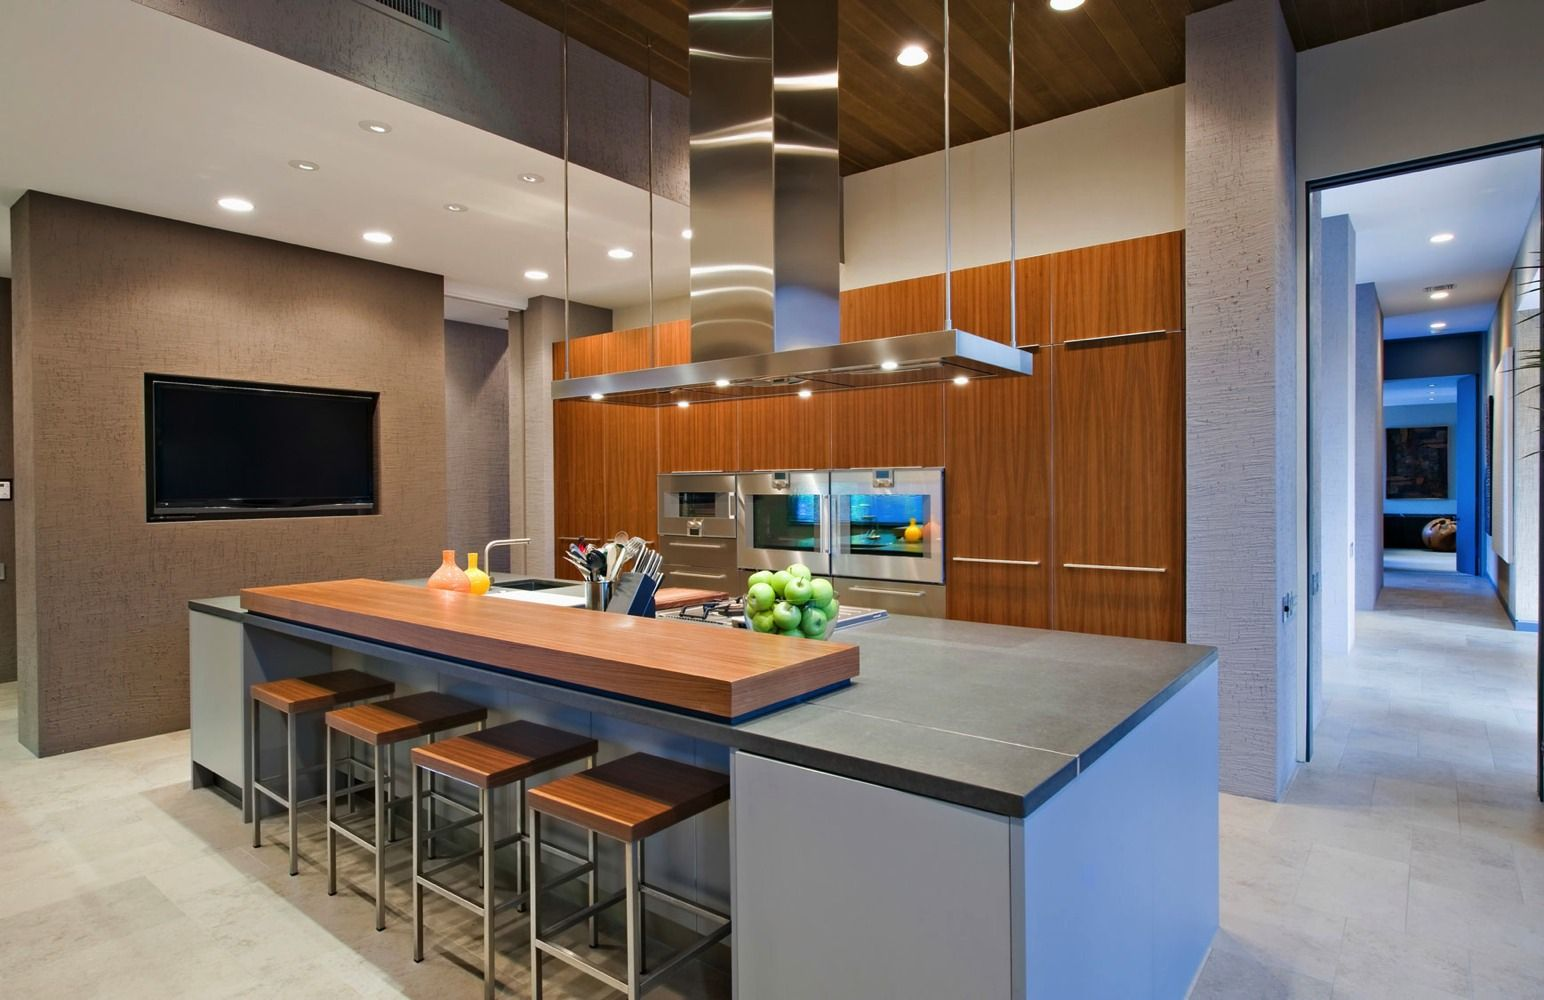 Kitchen Islands With Breakfast Bar The Best 100 Oak Kitchen Island With Breakfast Bar Imag Modern Kitchen Bar Contemporary Kitchen Island Modern Kitchen Island